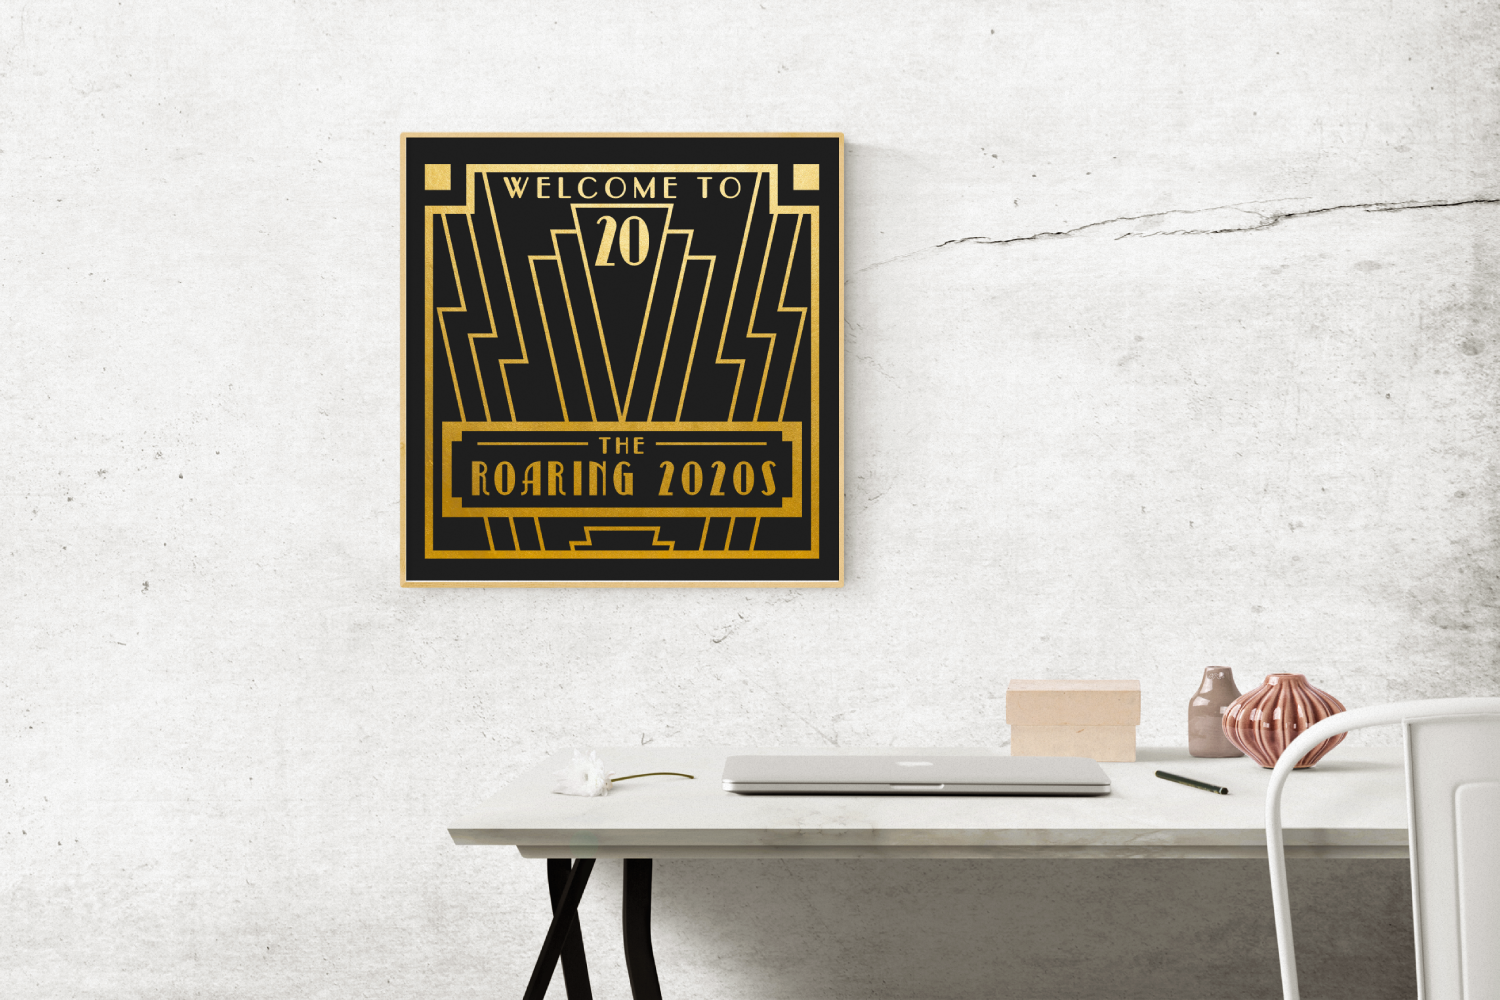 The Roaring 2020s Art Deco Frame SVG Design File example image 1